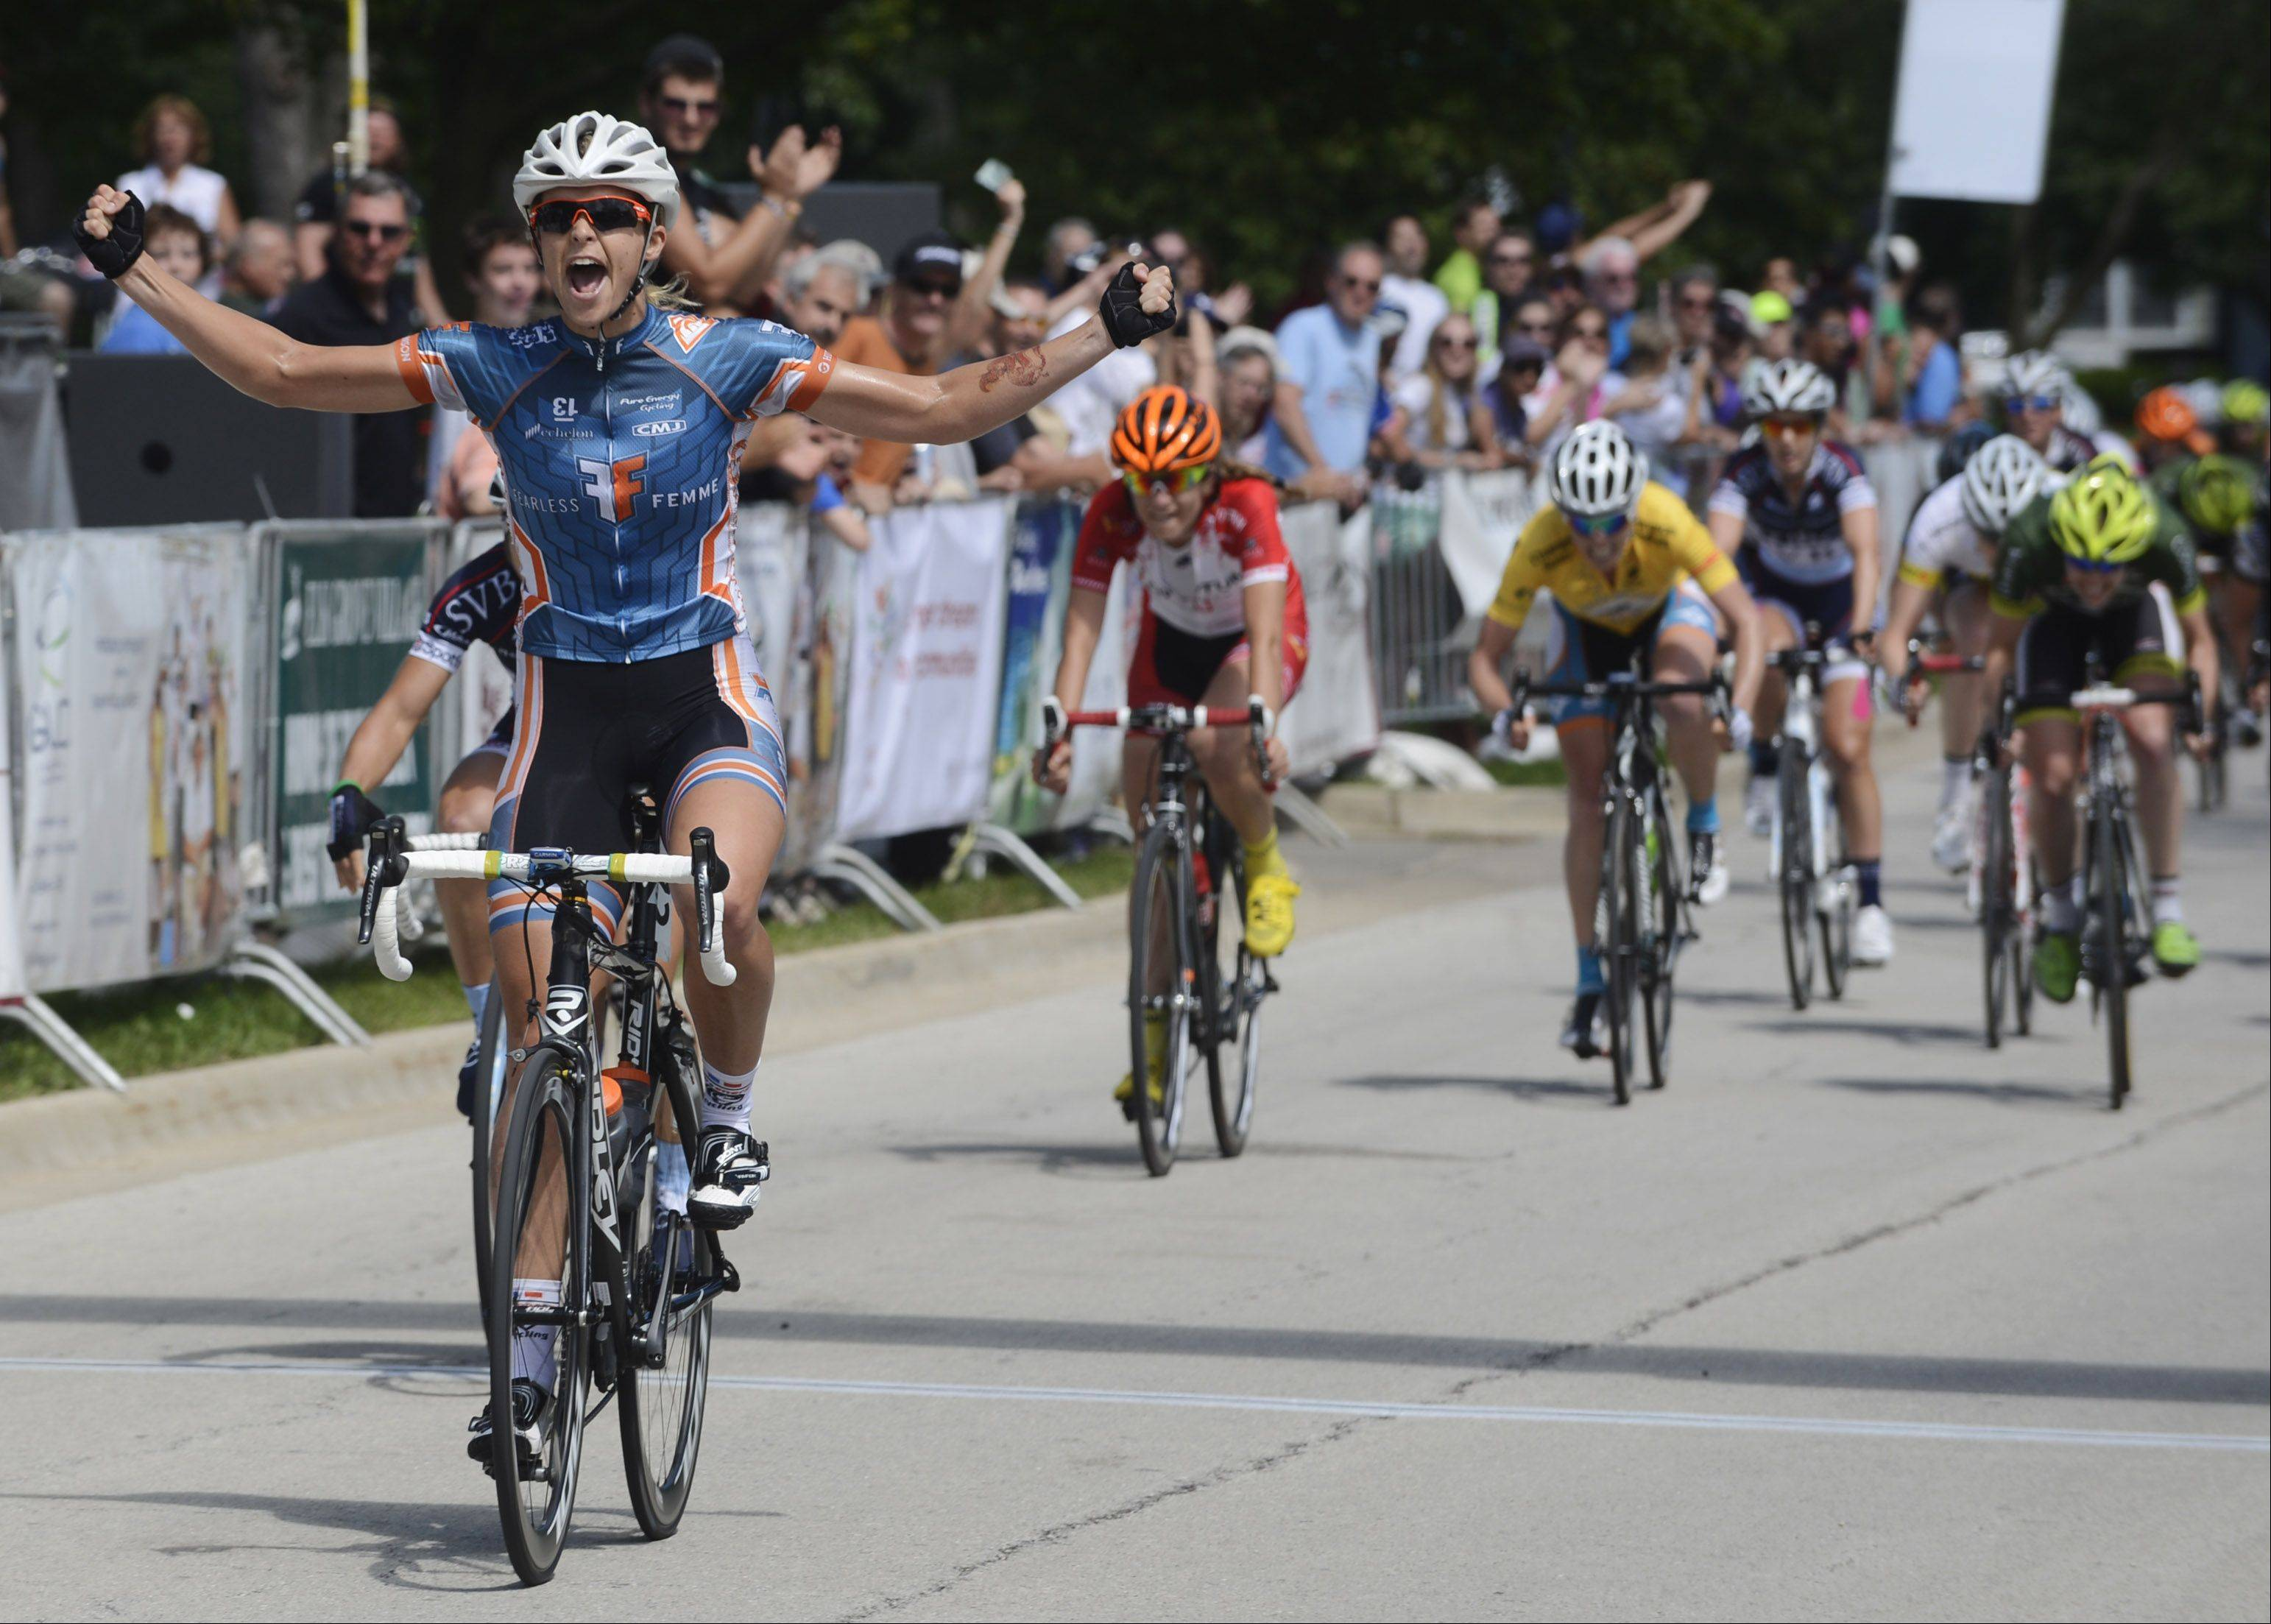 Kimberley Wells wins Stage 3 of the ComEd Women Pro Circuit Race on Sunday during the Tour of Elk Grove.